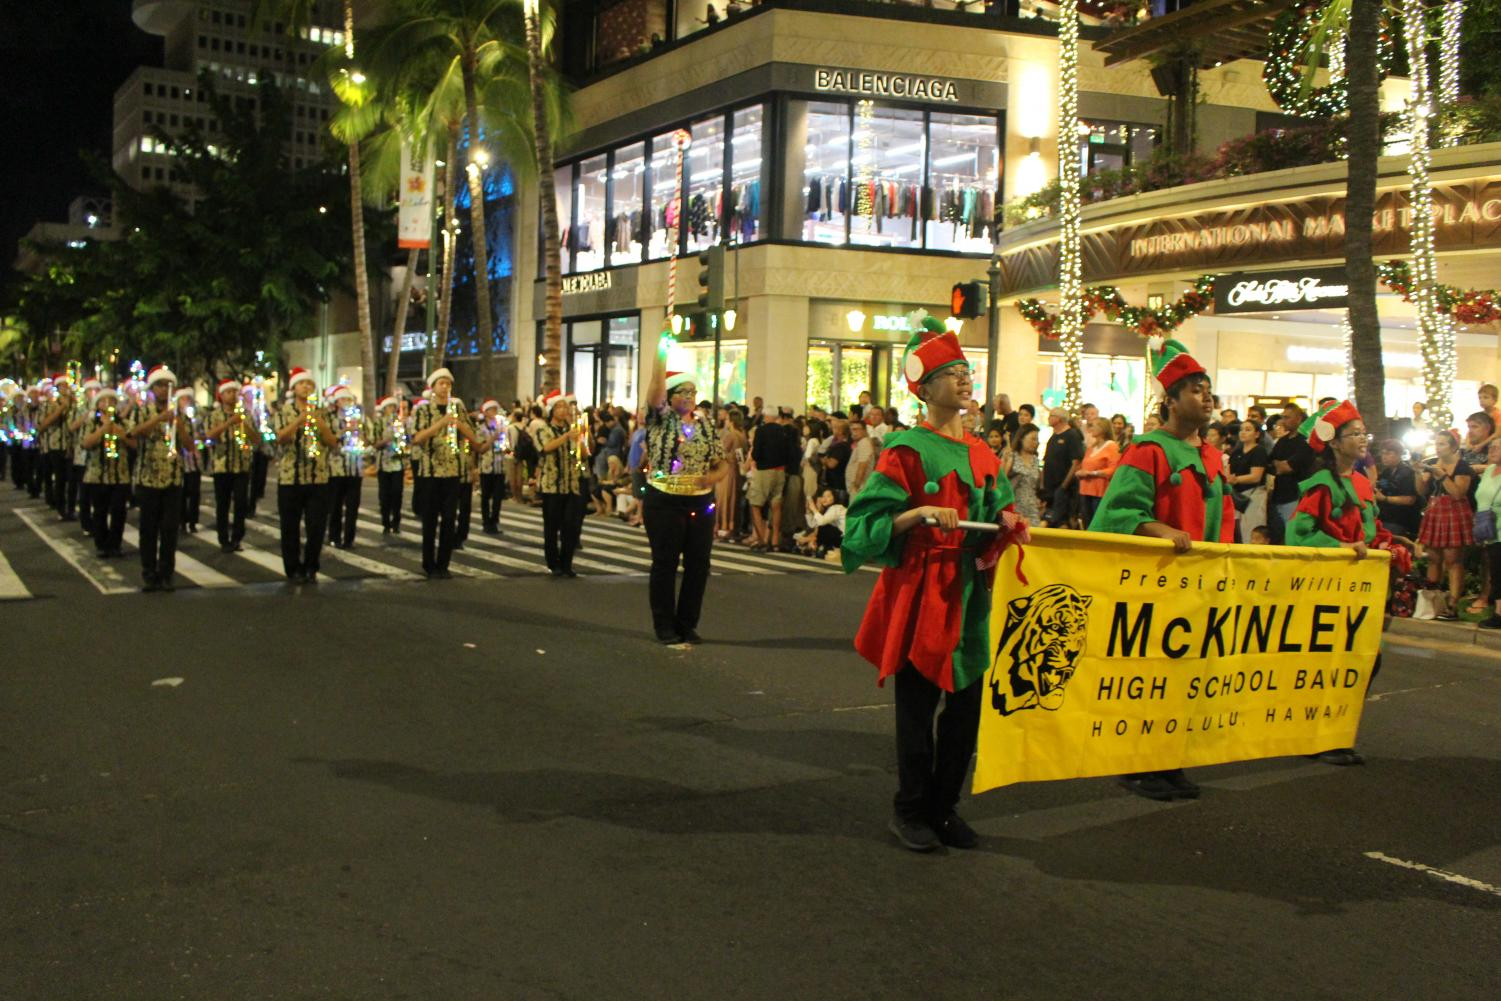 Marching bands played music in the shopping district of Waikiki Beach to spread holiday cheer.